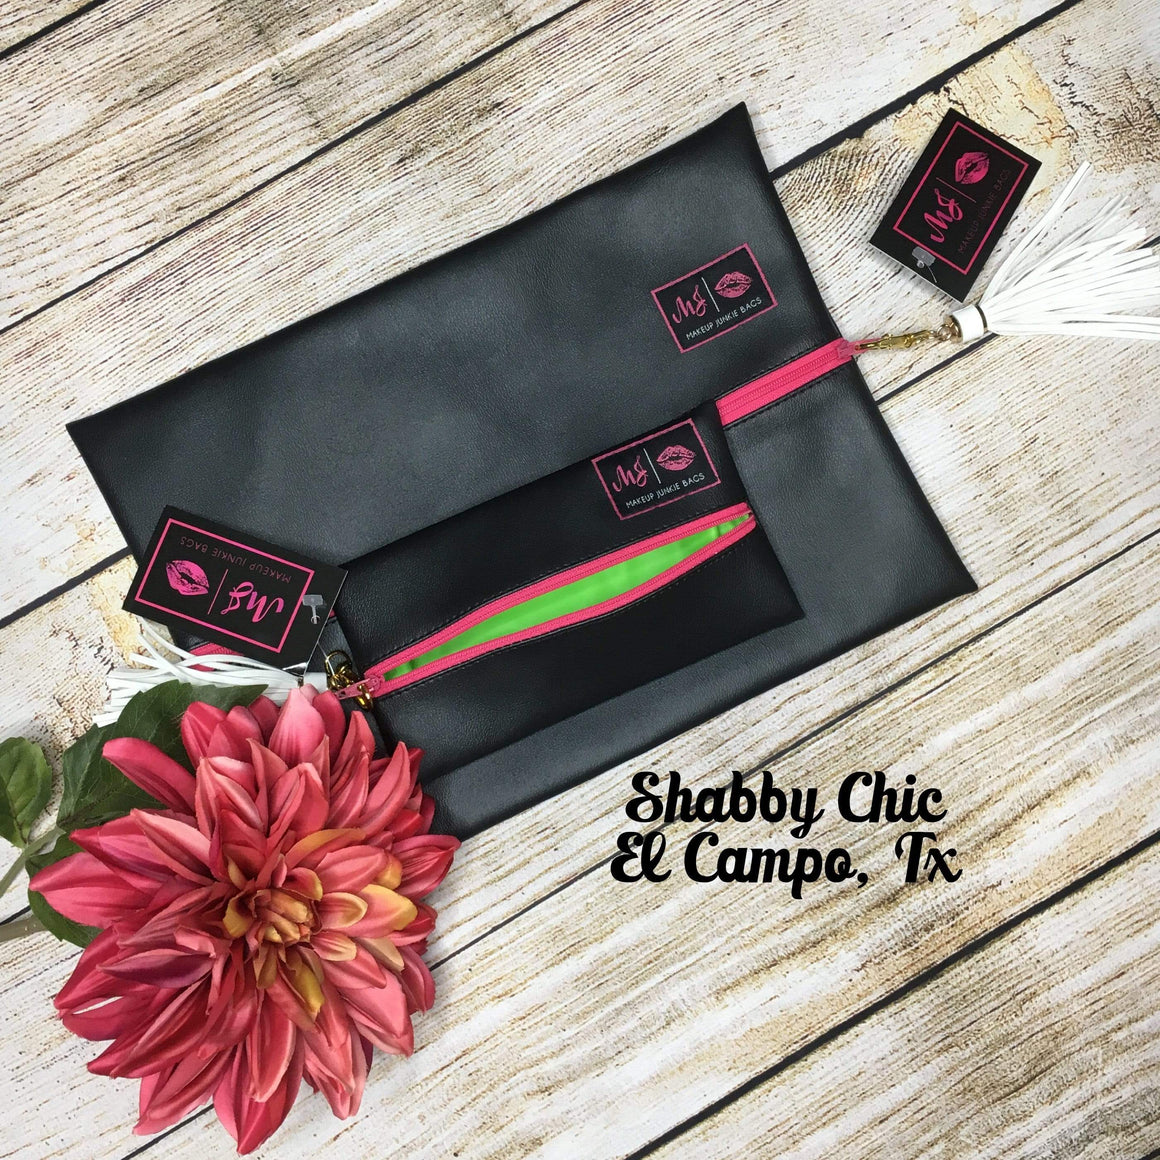 Make Up Junkie Bag - JET BLACK - HOT PINK ZIPPER - LIME INTERIOR Shabby Chic Boutique and Tanning Salon